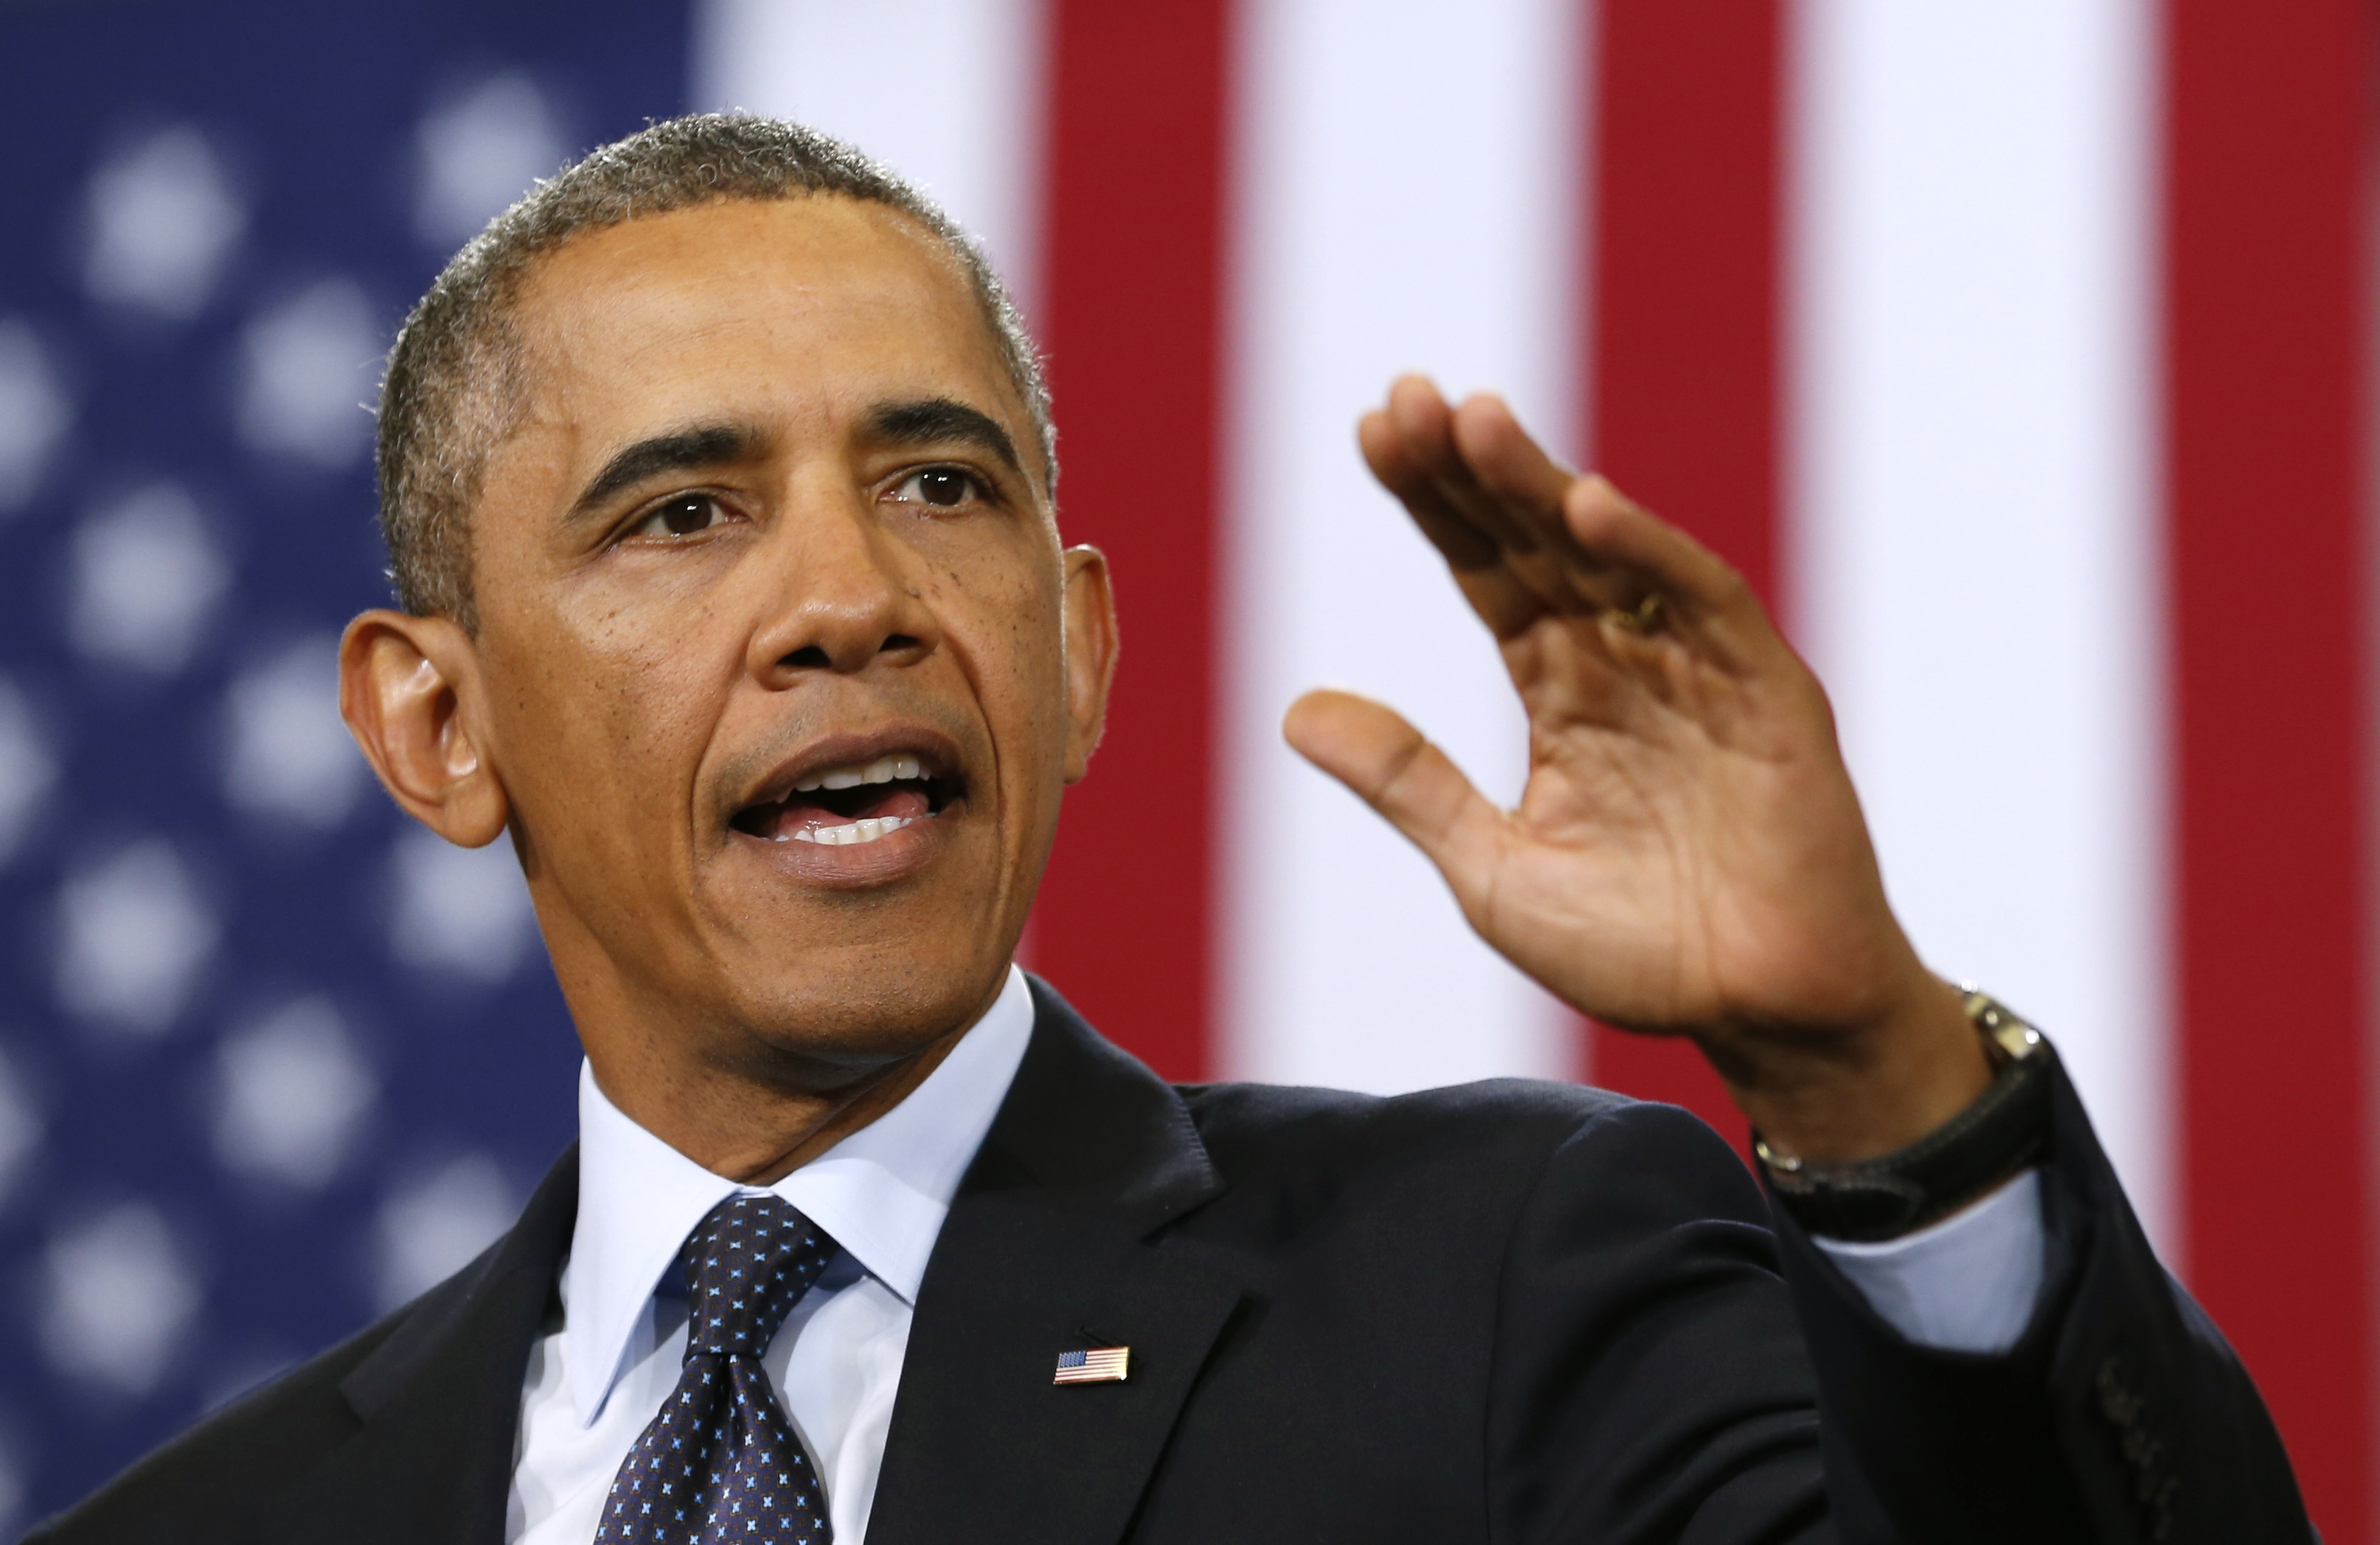 Obama to send special forces to Syria